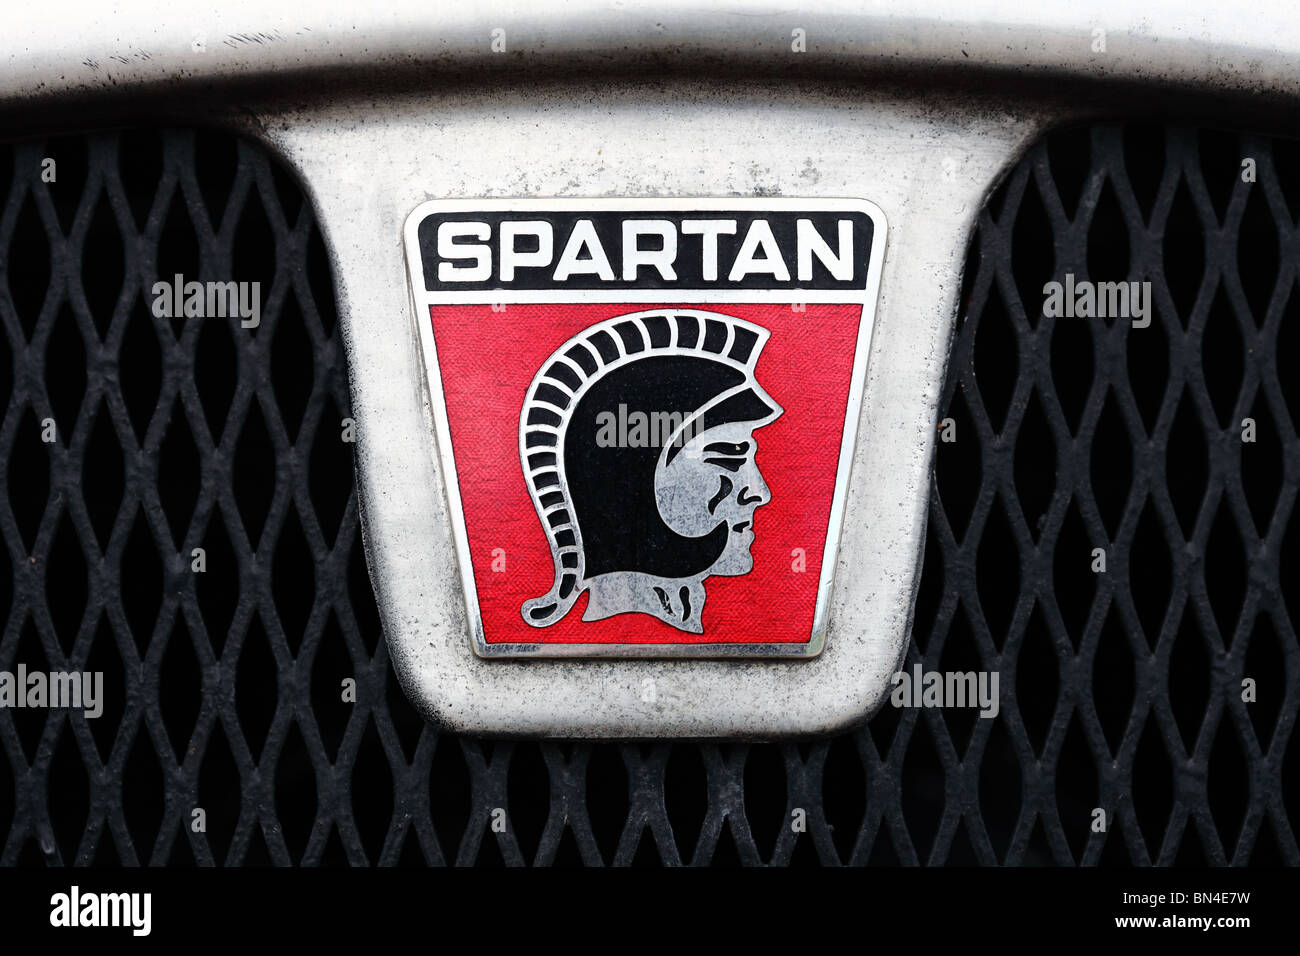 Spartan British kit car manufacturer badge logo Stock Photo